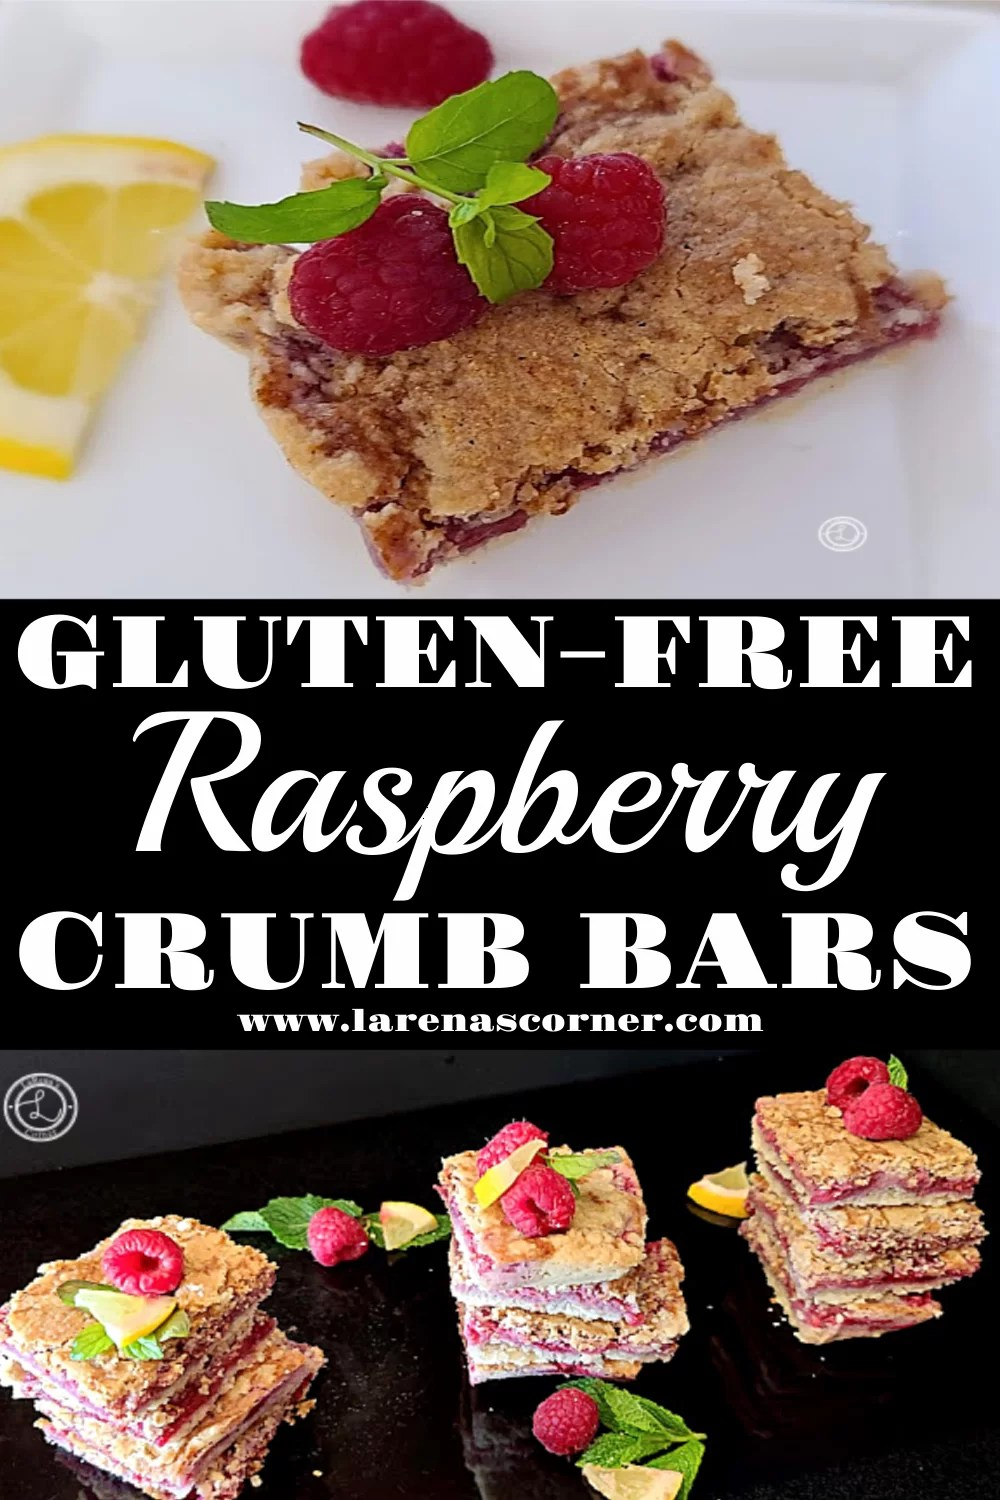 Two gorgeous pictures of this summer delight. One close-up of one bar. The second picture of three stacks of Gluten-Free Raspberry Crumb Bars.